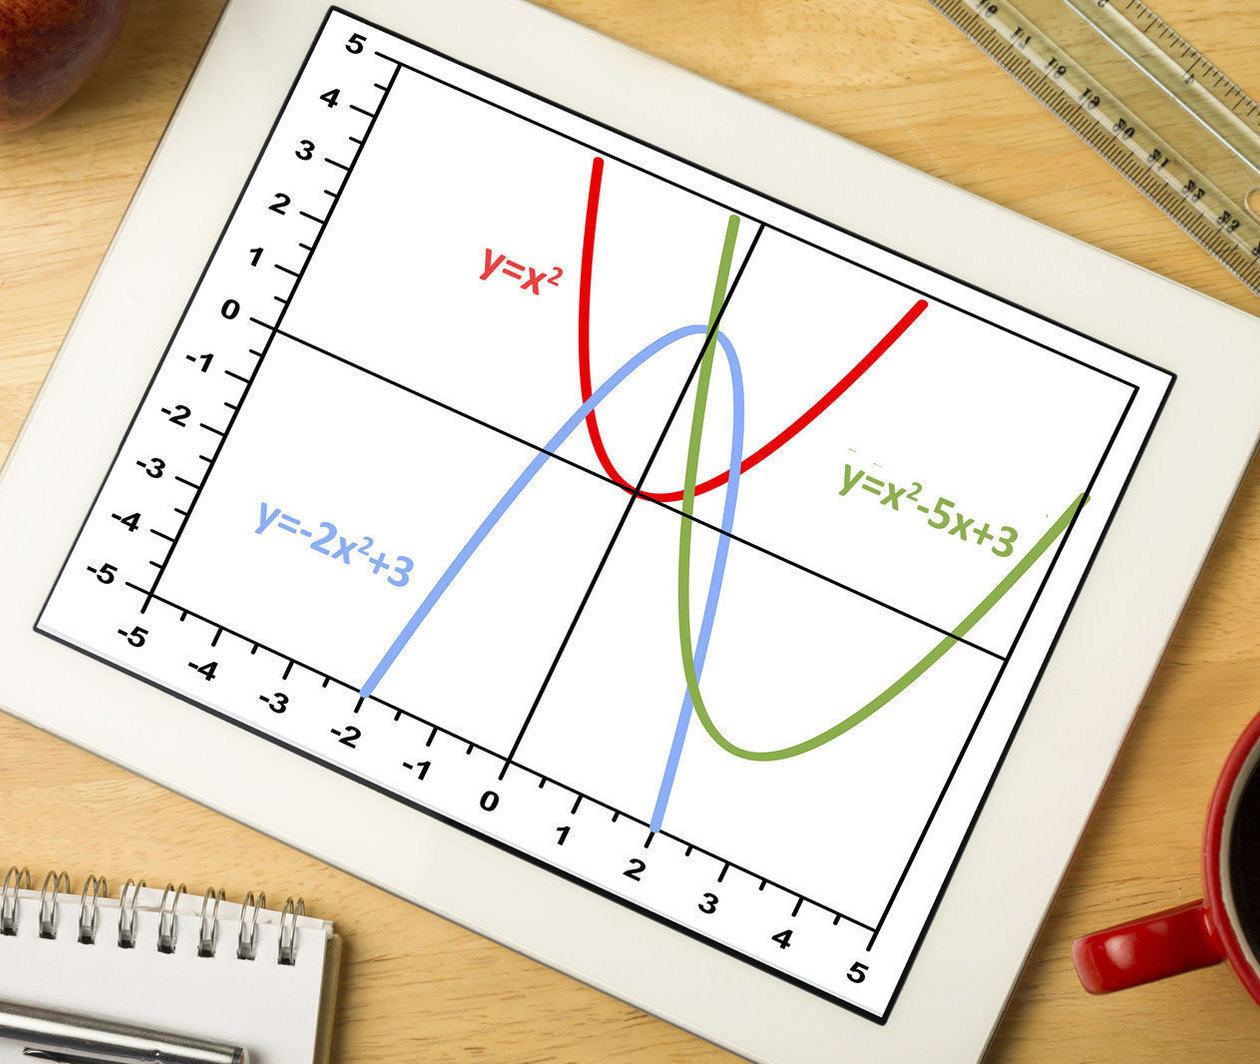 Maths for Humans: Linear, Quadratic & Inverse Relations